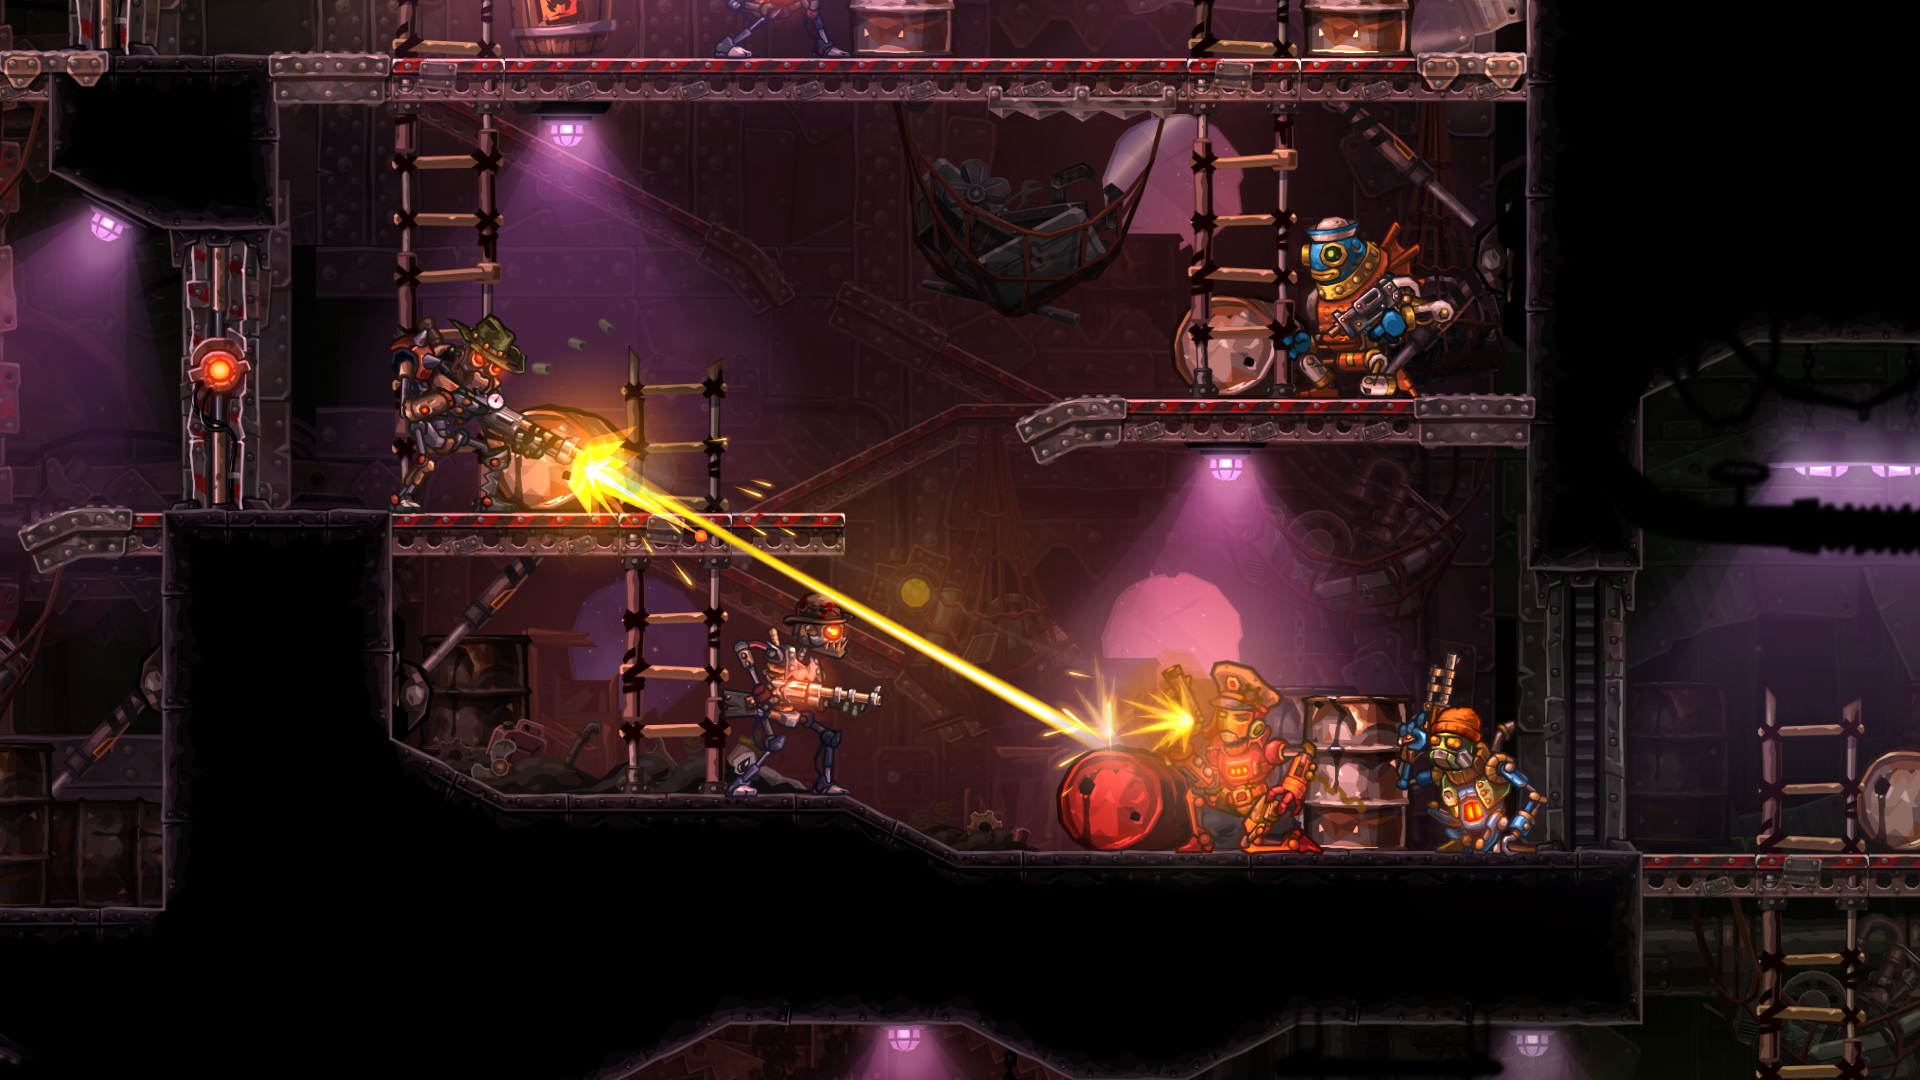 SteamWorld Heist started with an office argument about X-COM working